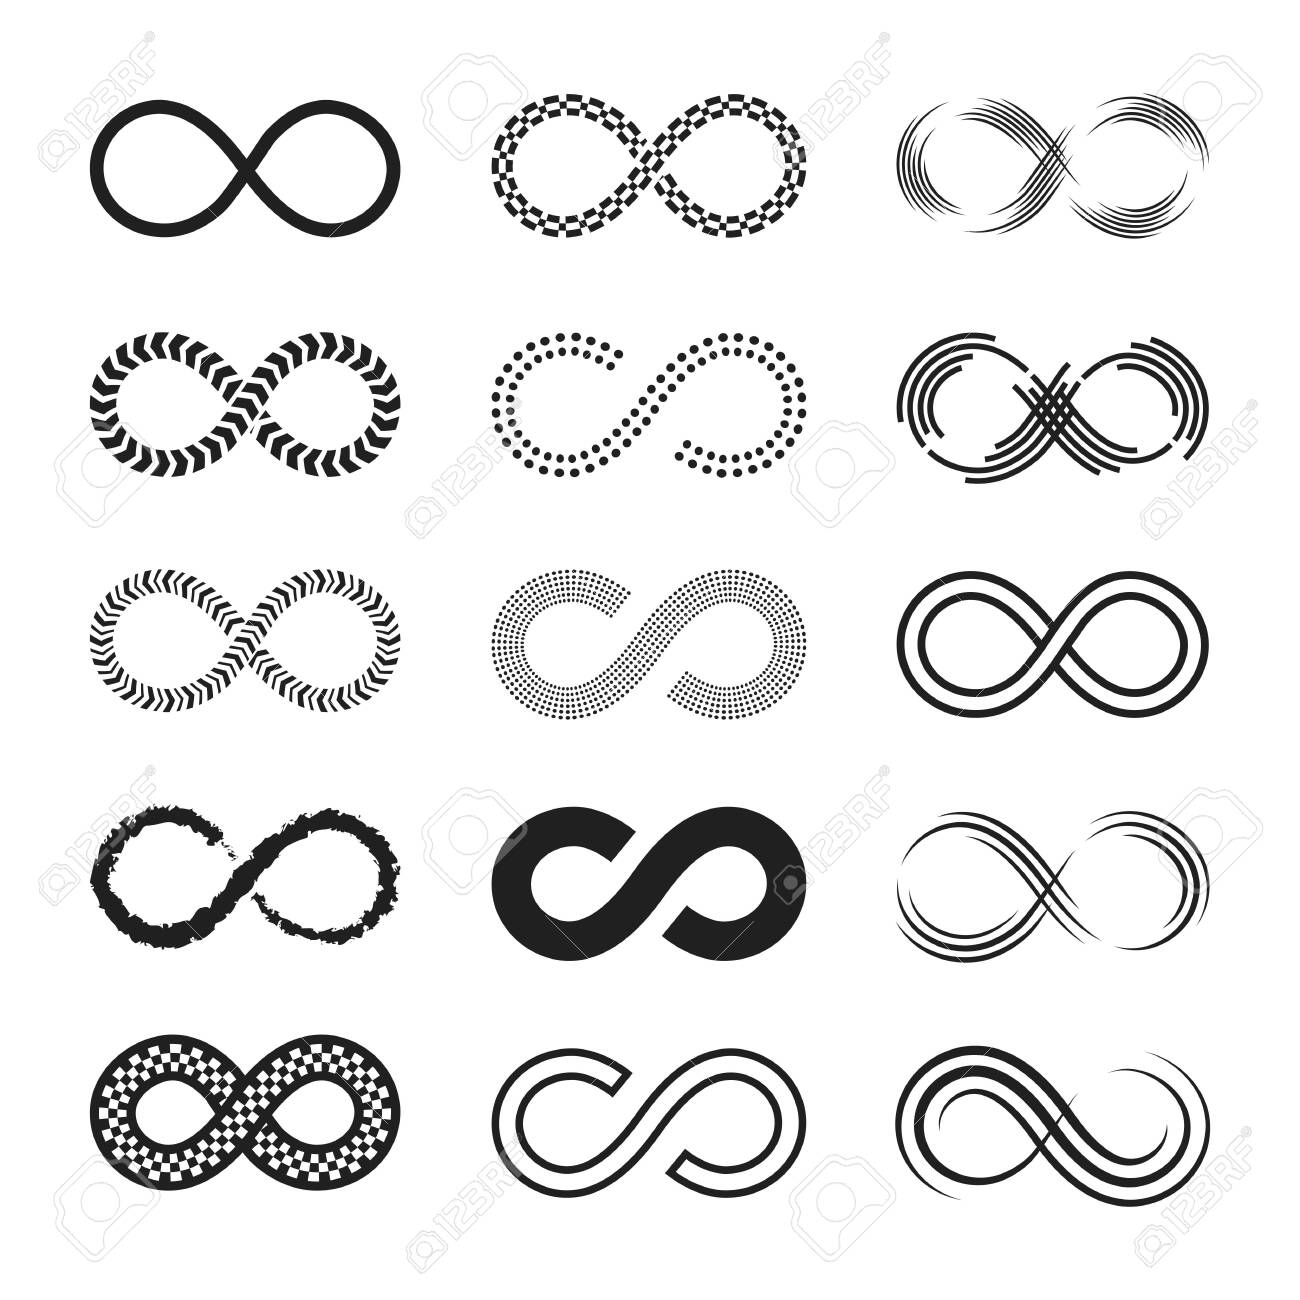 Infinity signs set. Endless eternity symbols, black eight geometric shapes isolated on white background. Can be used for logo or emblem design, Moebius loop concept - 149924259